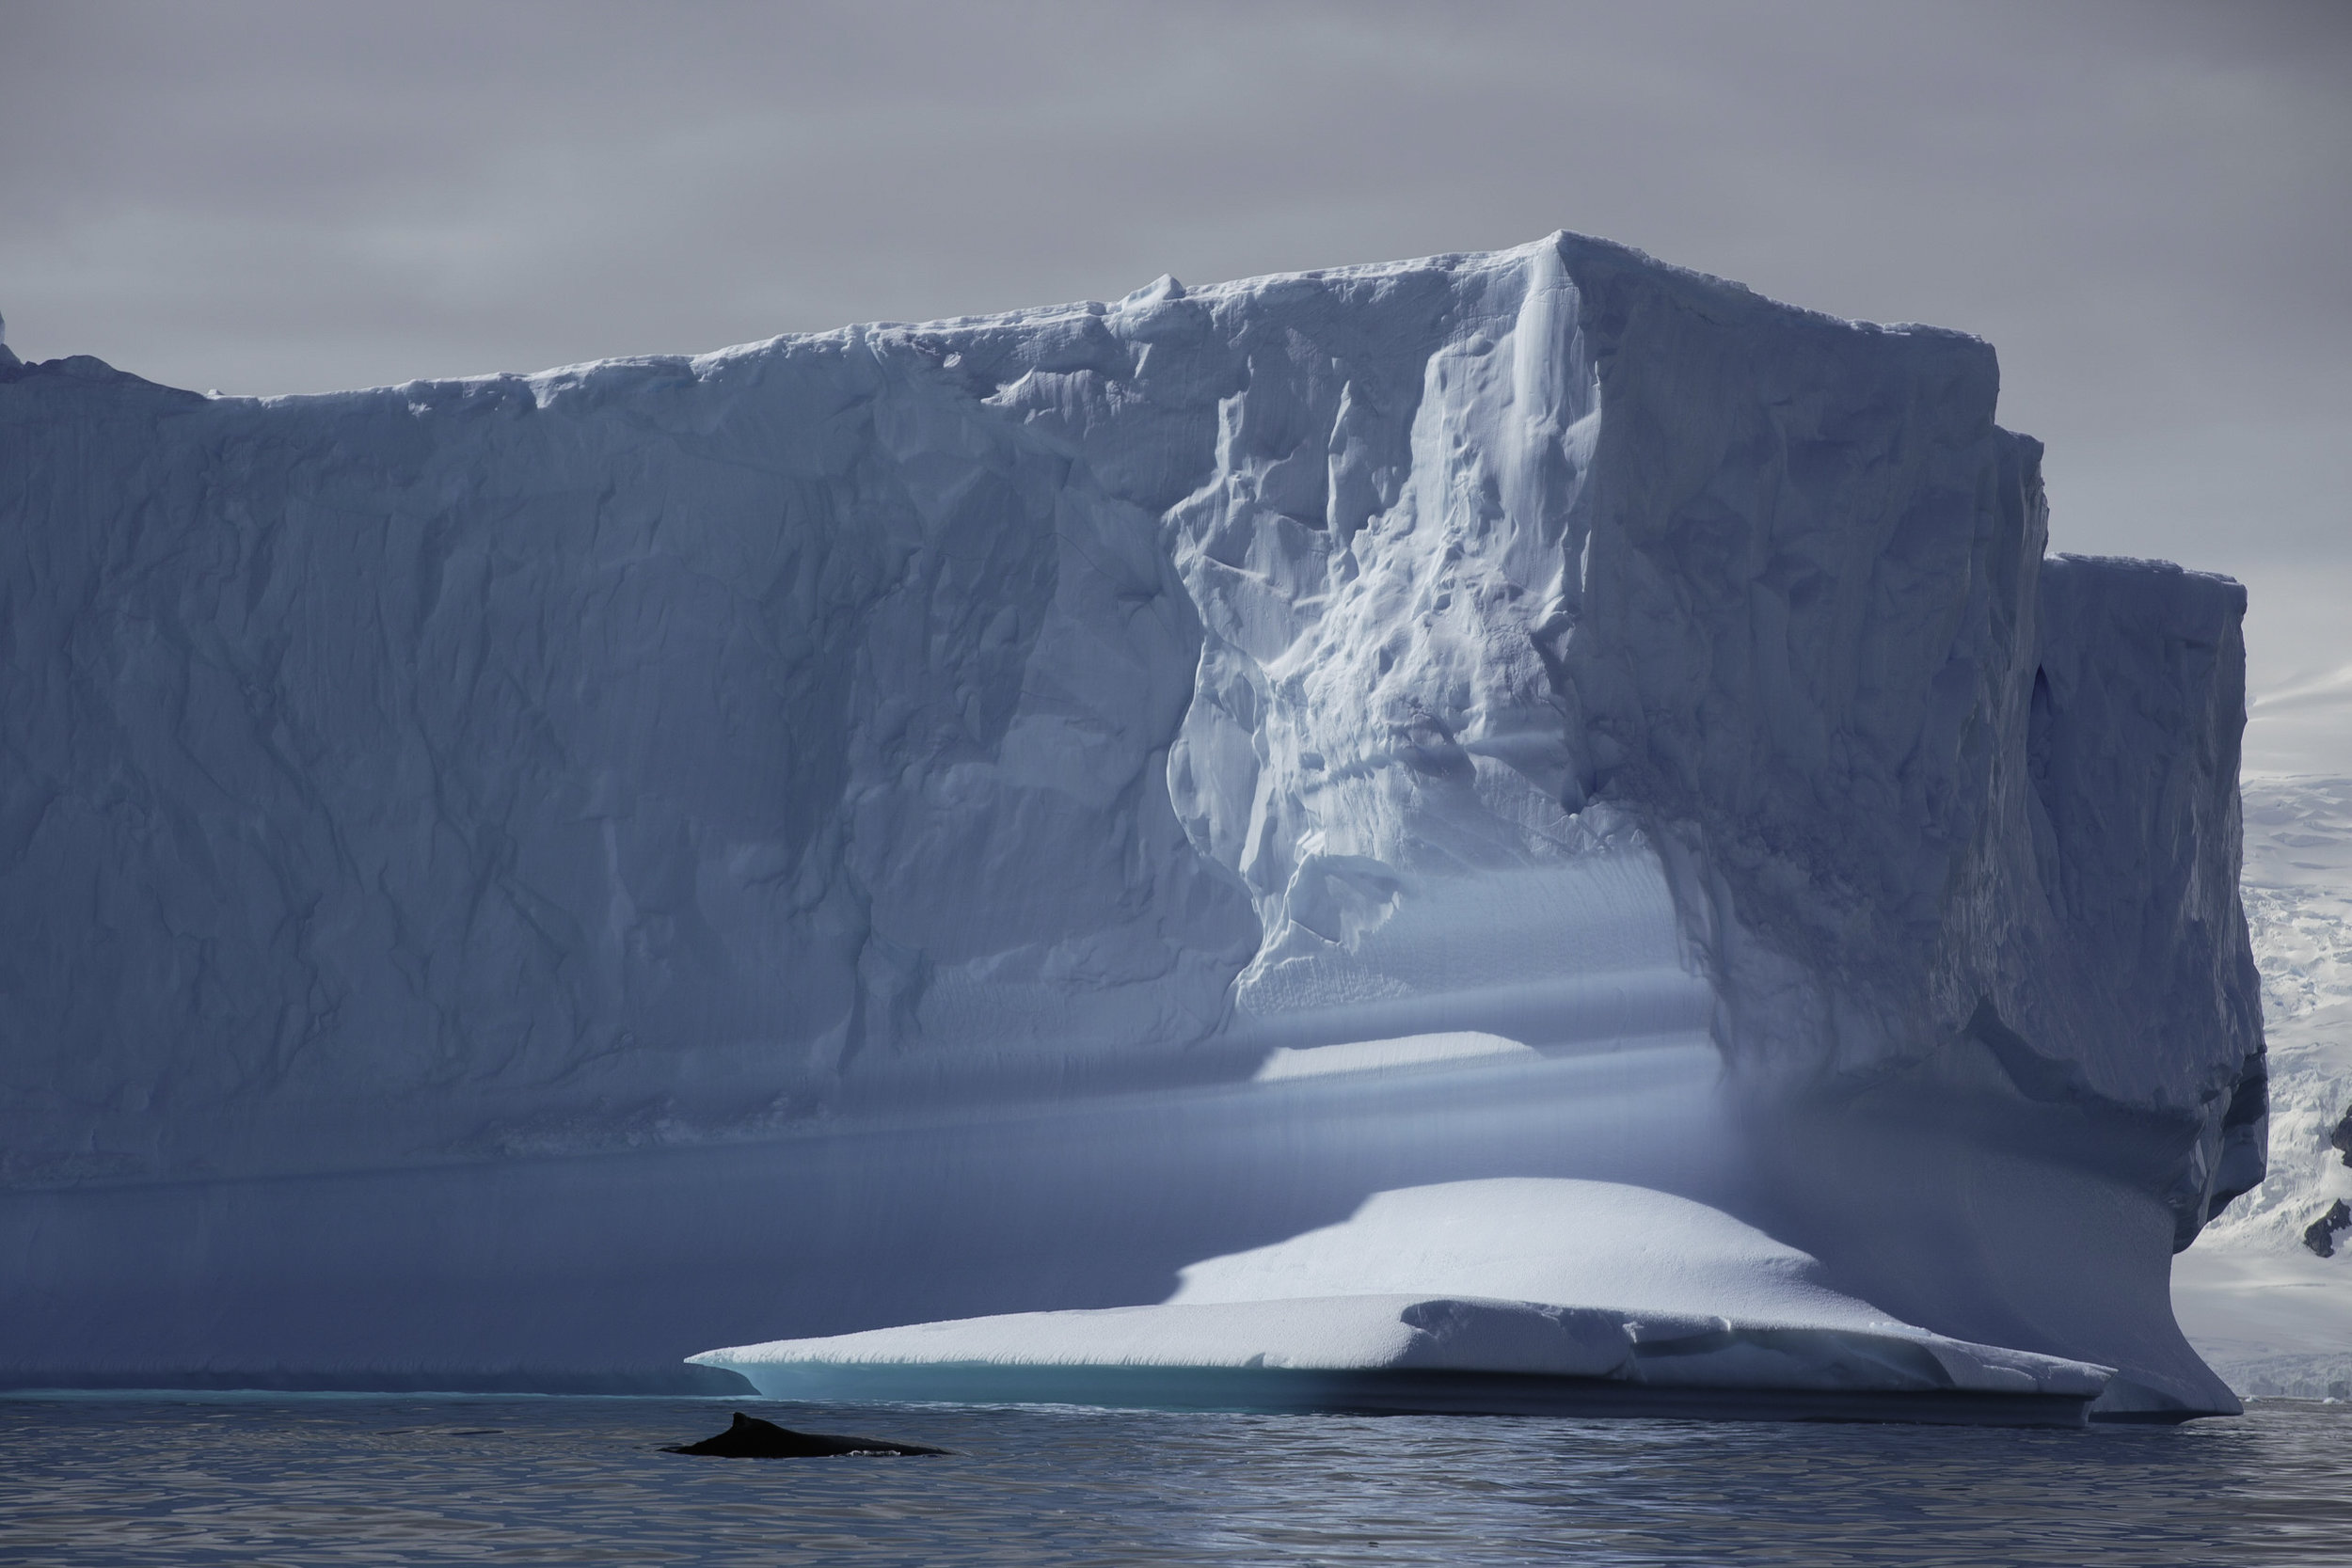 A minke whale swims past an iceberg near Portal Point.